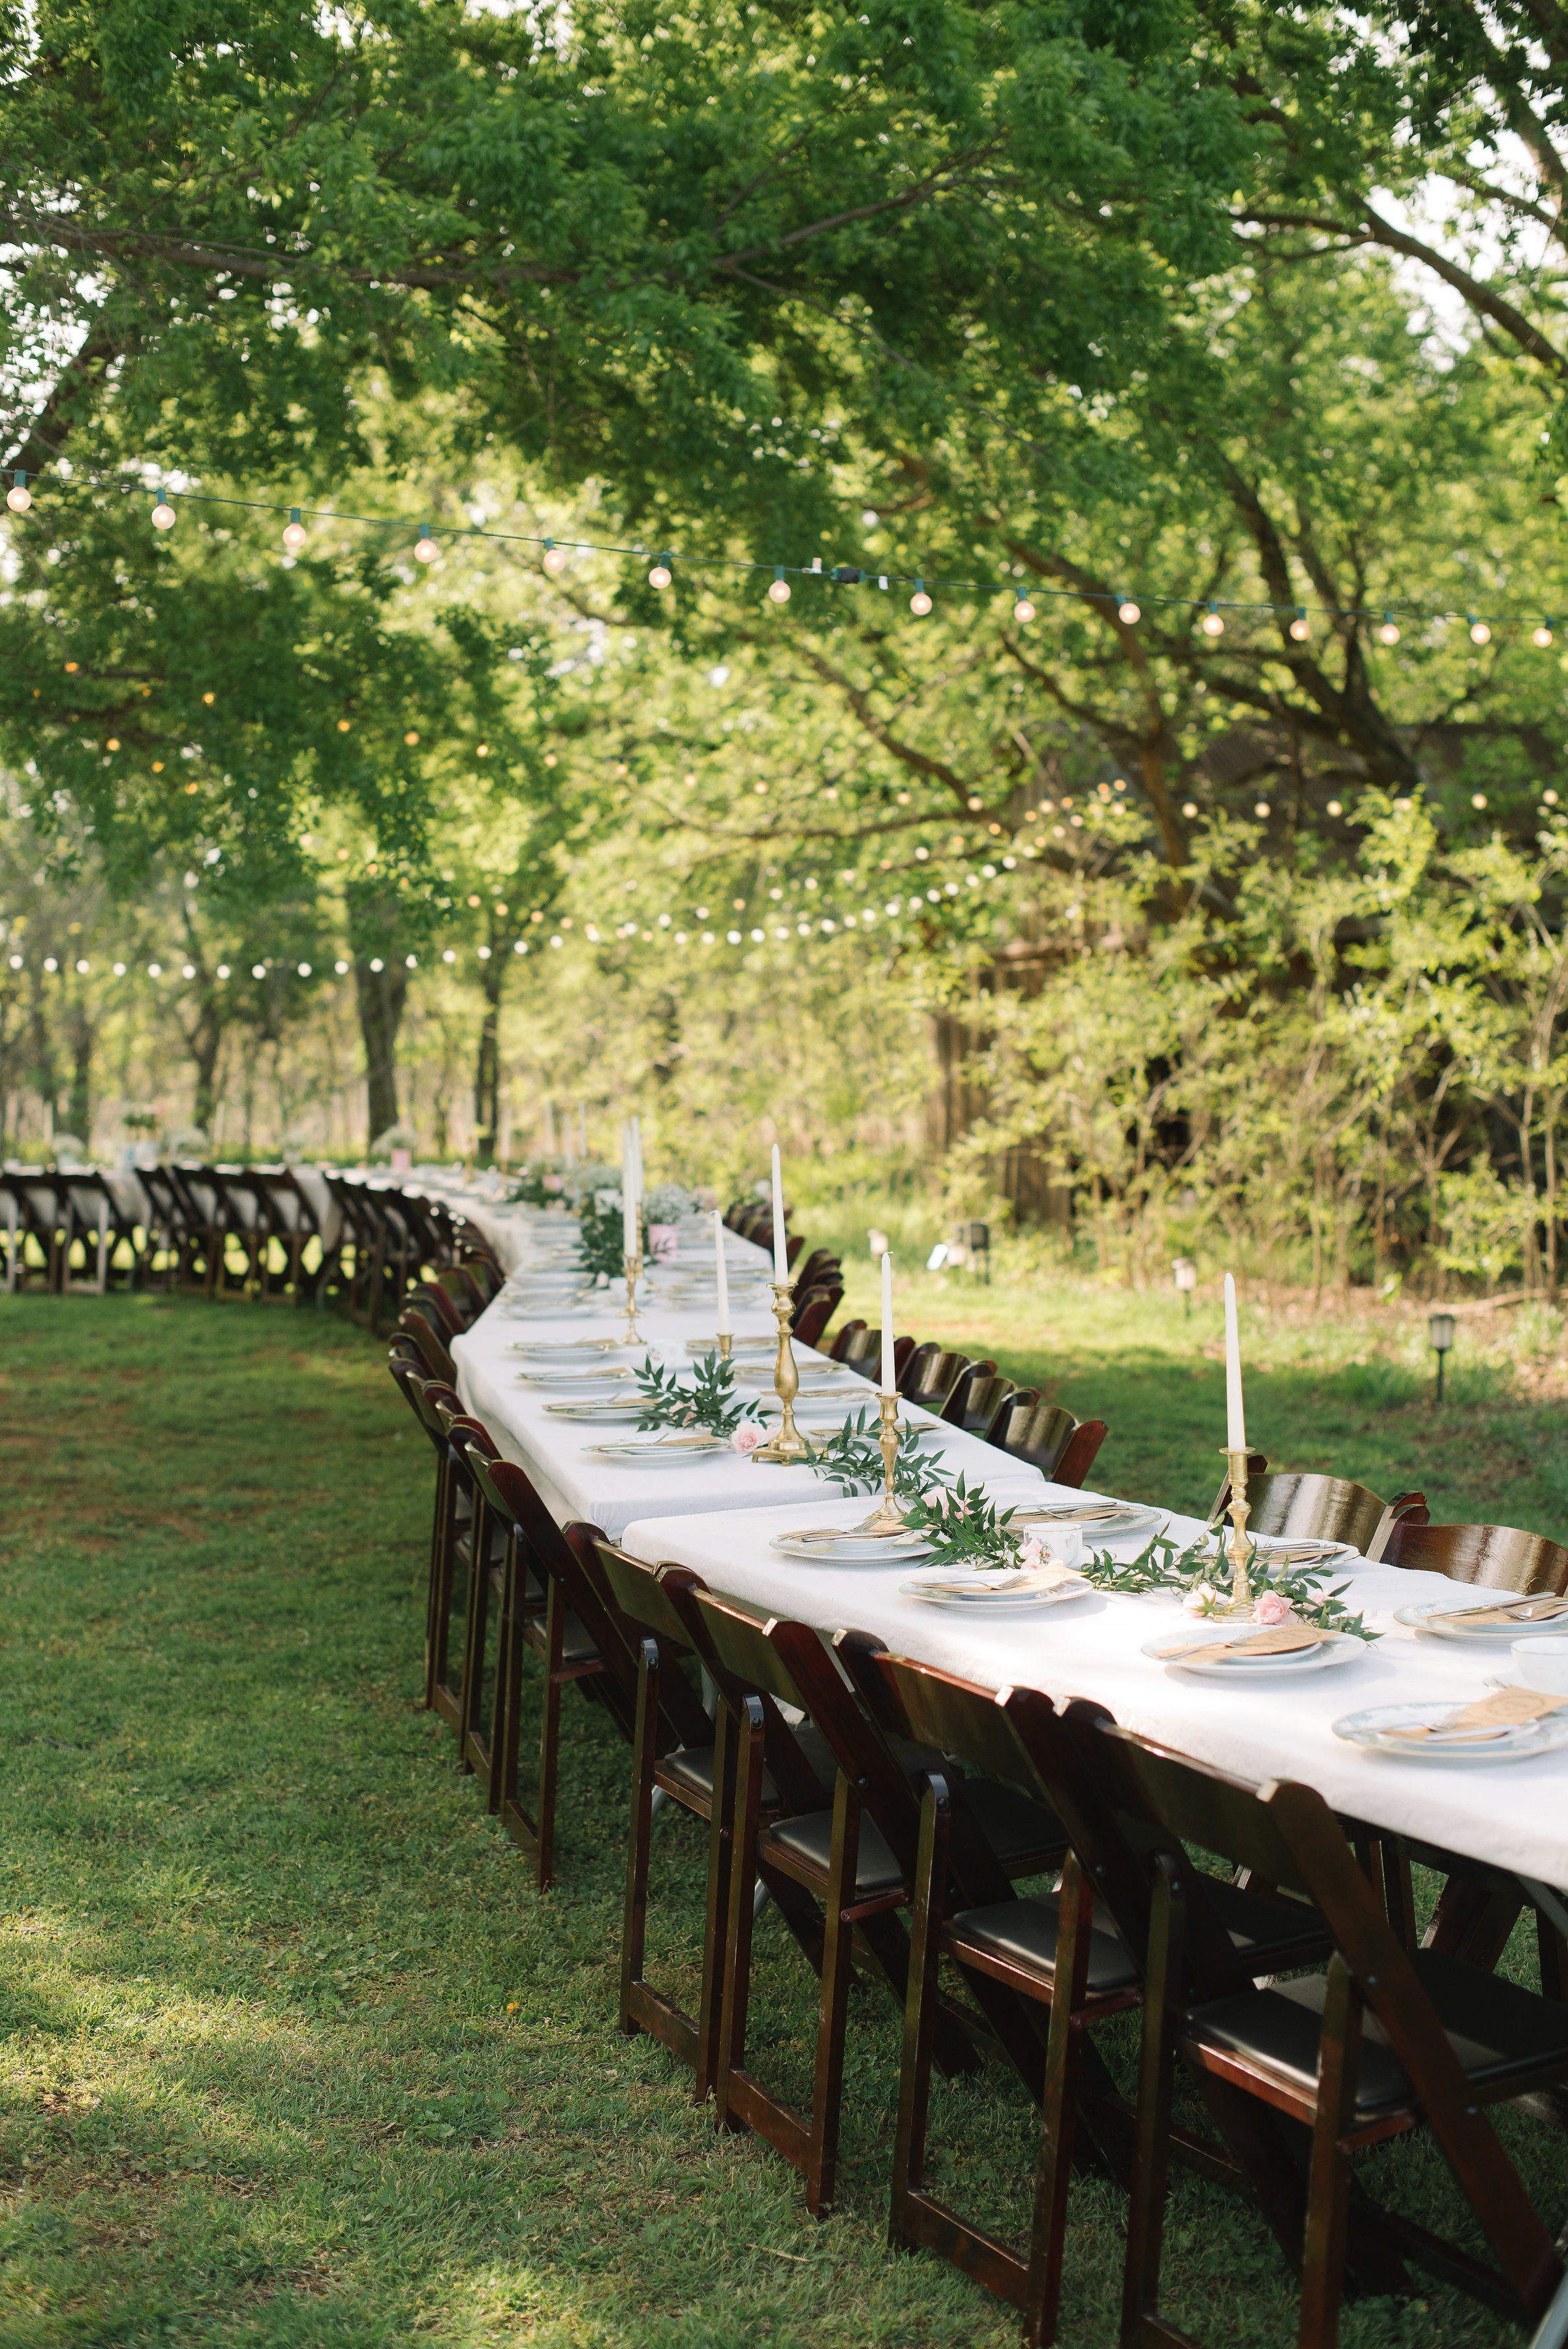 The Brumbaugh reception was just as beautiful. Long tables and elegant, gold details made this tablescape extra pretty!